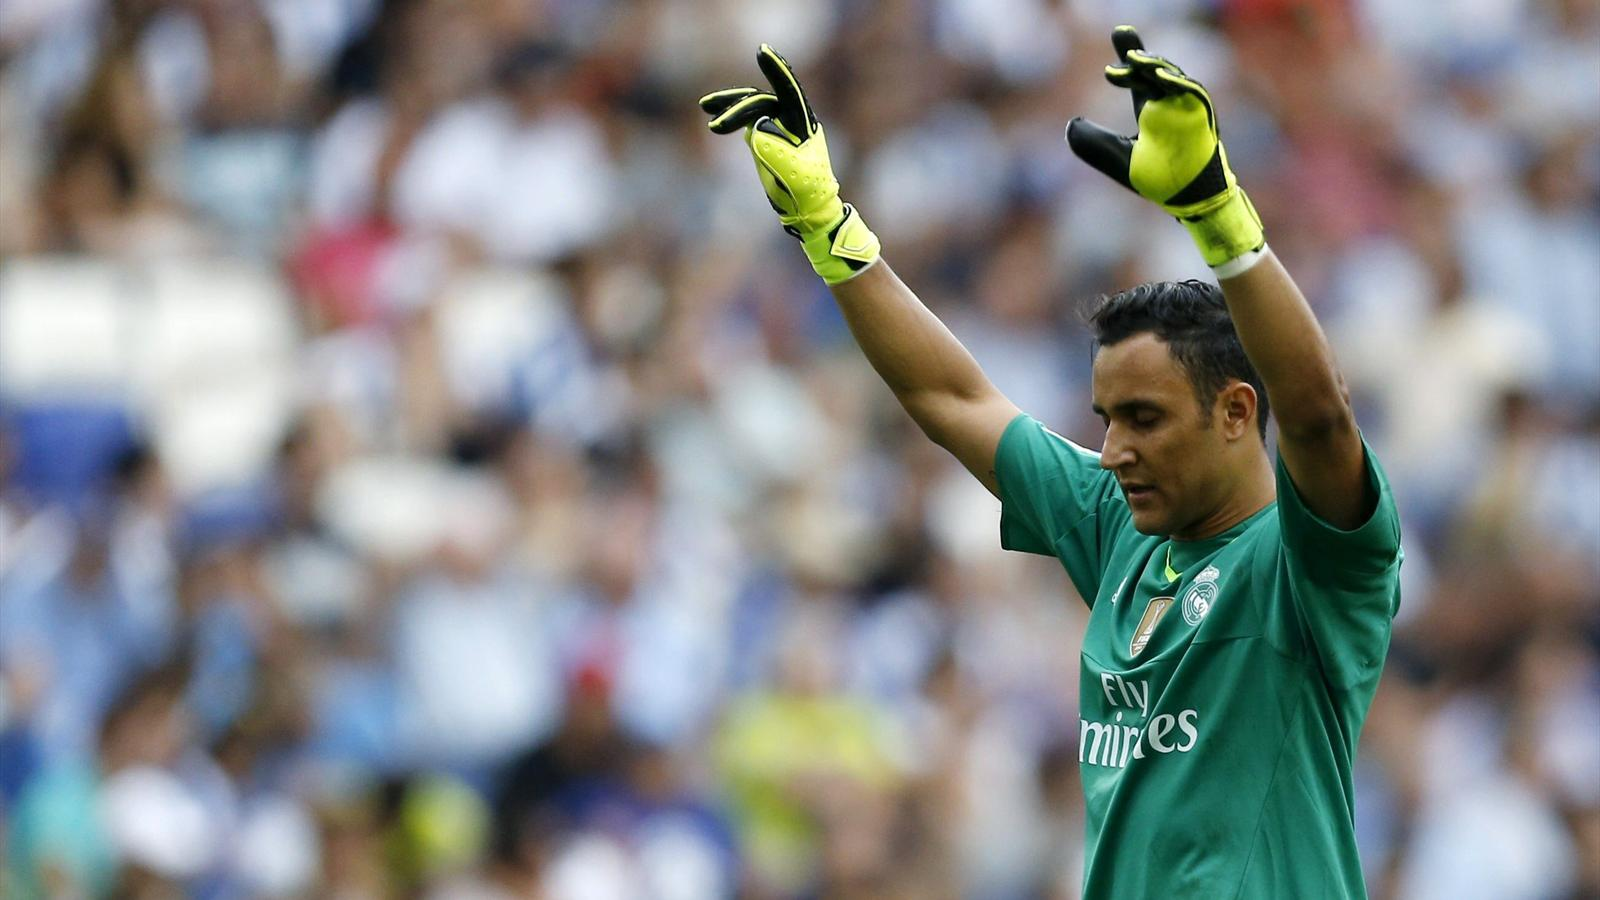 Keylor Navas set to break 40 year old clean sheet record with Real